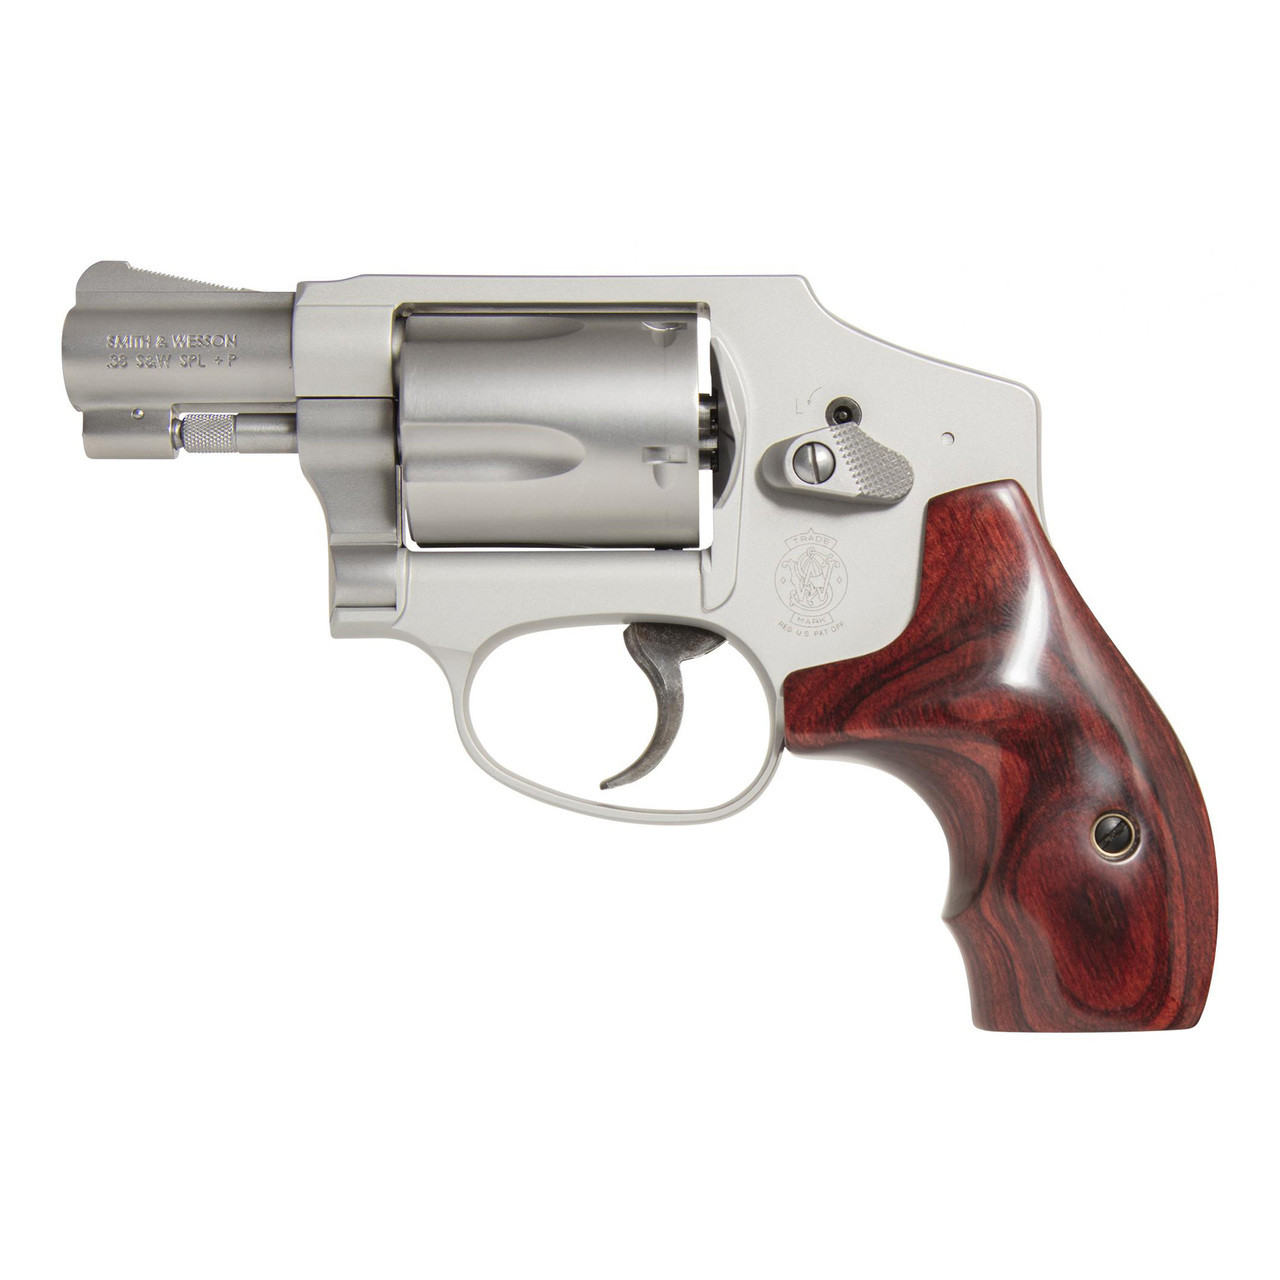 Smith Wesson Model 642 LadySmith, Small Revolver, 38 Special